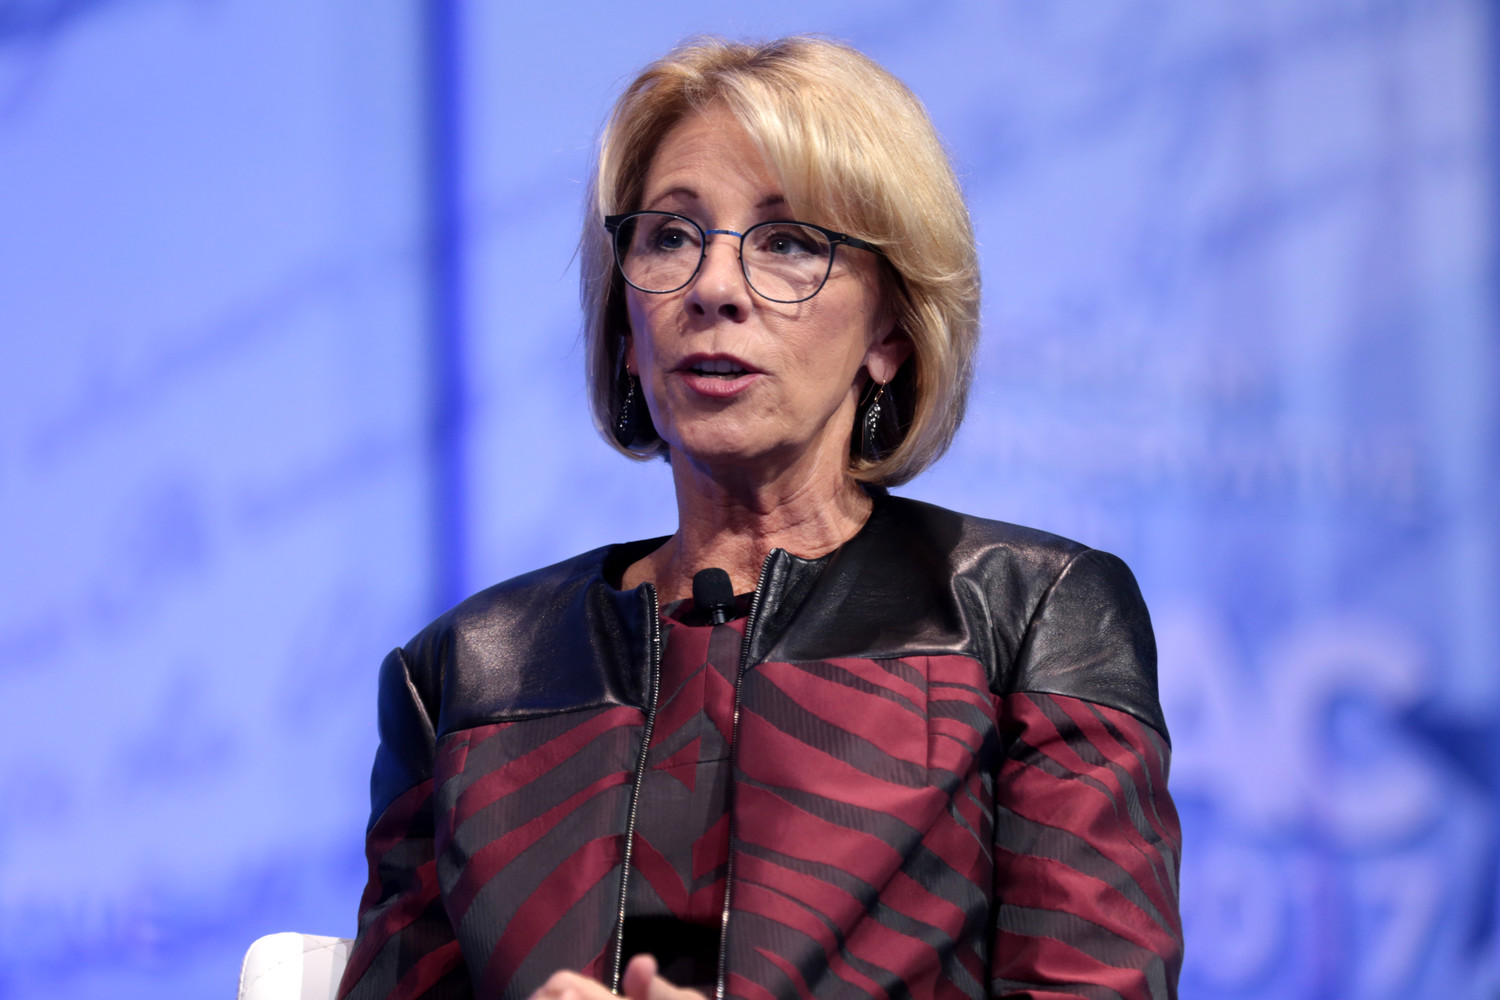 U.S Education Secretary Betsy Devos is considering releasing federal funds for the purpose of purchasing firearms for use by public school teachers.